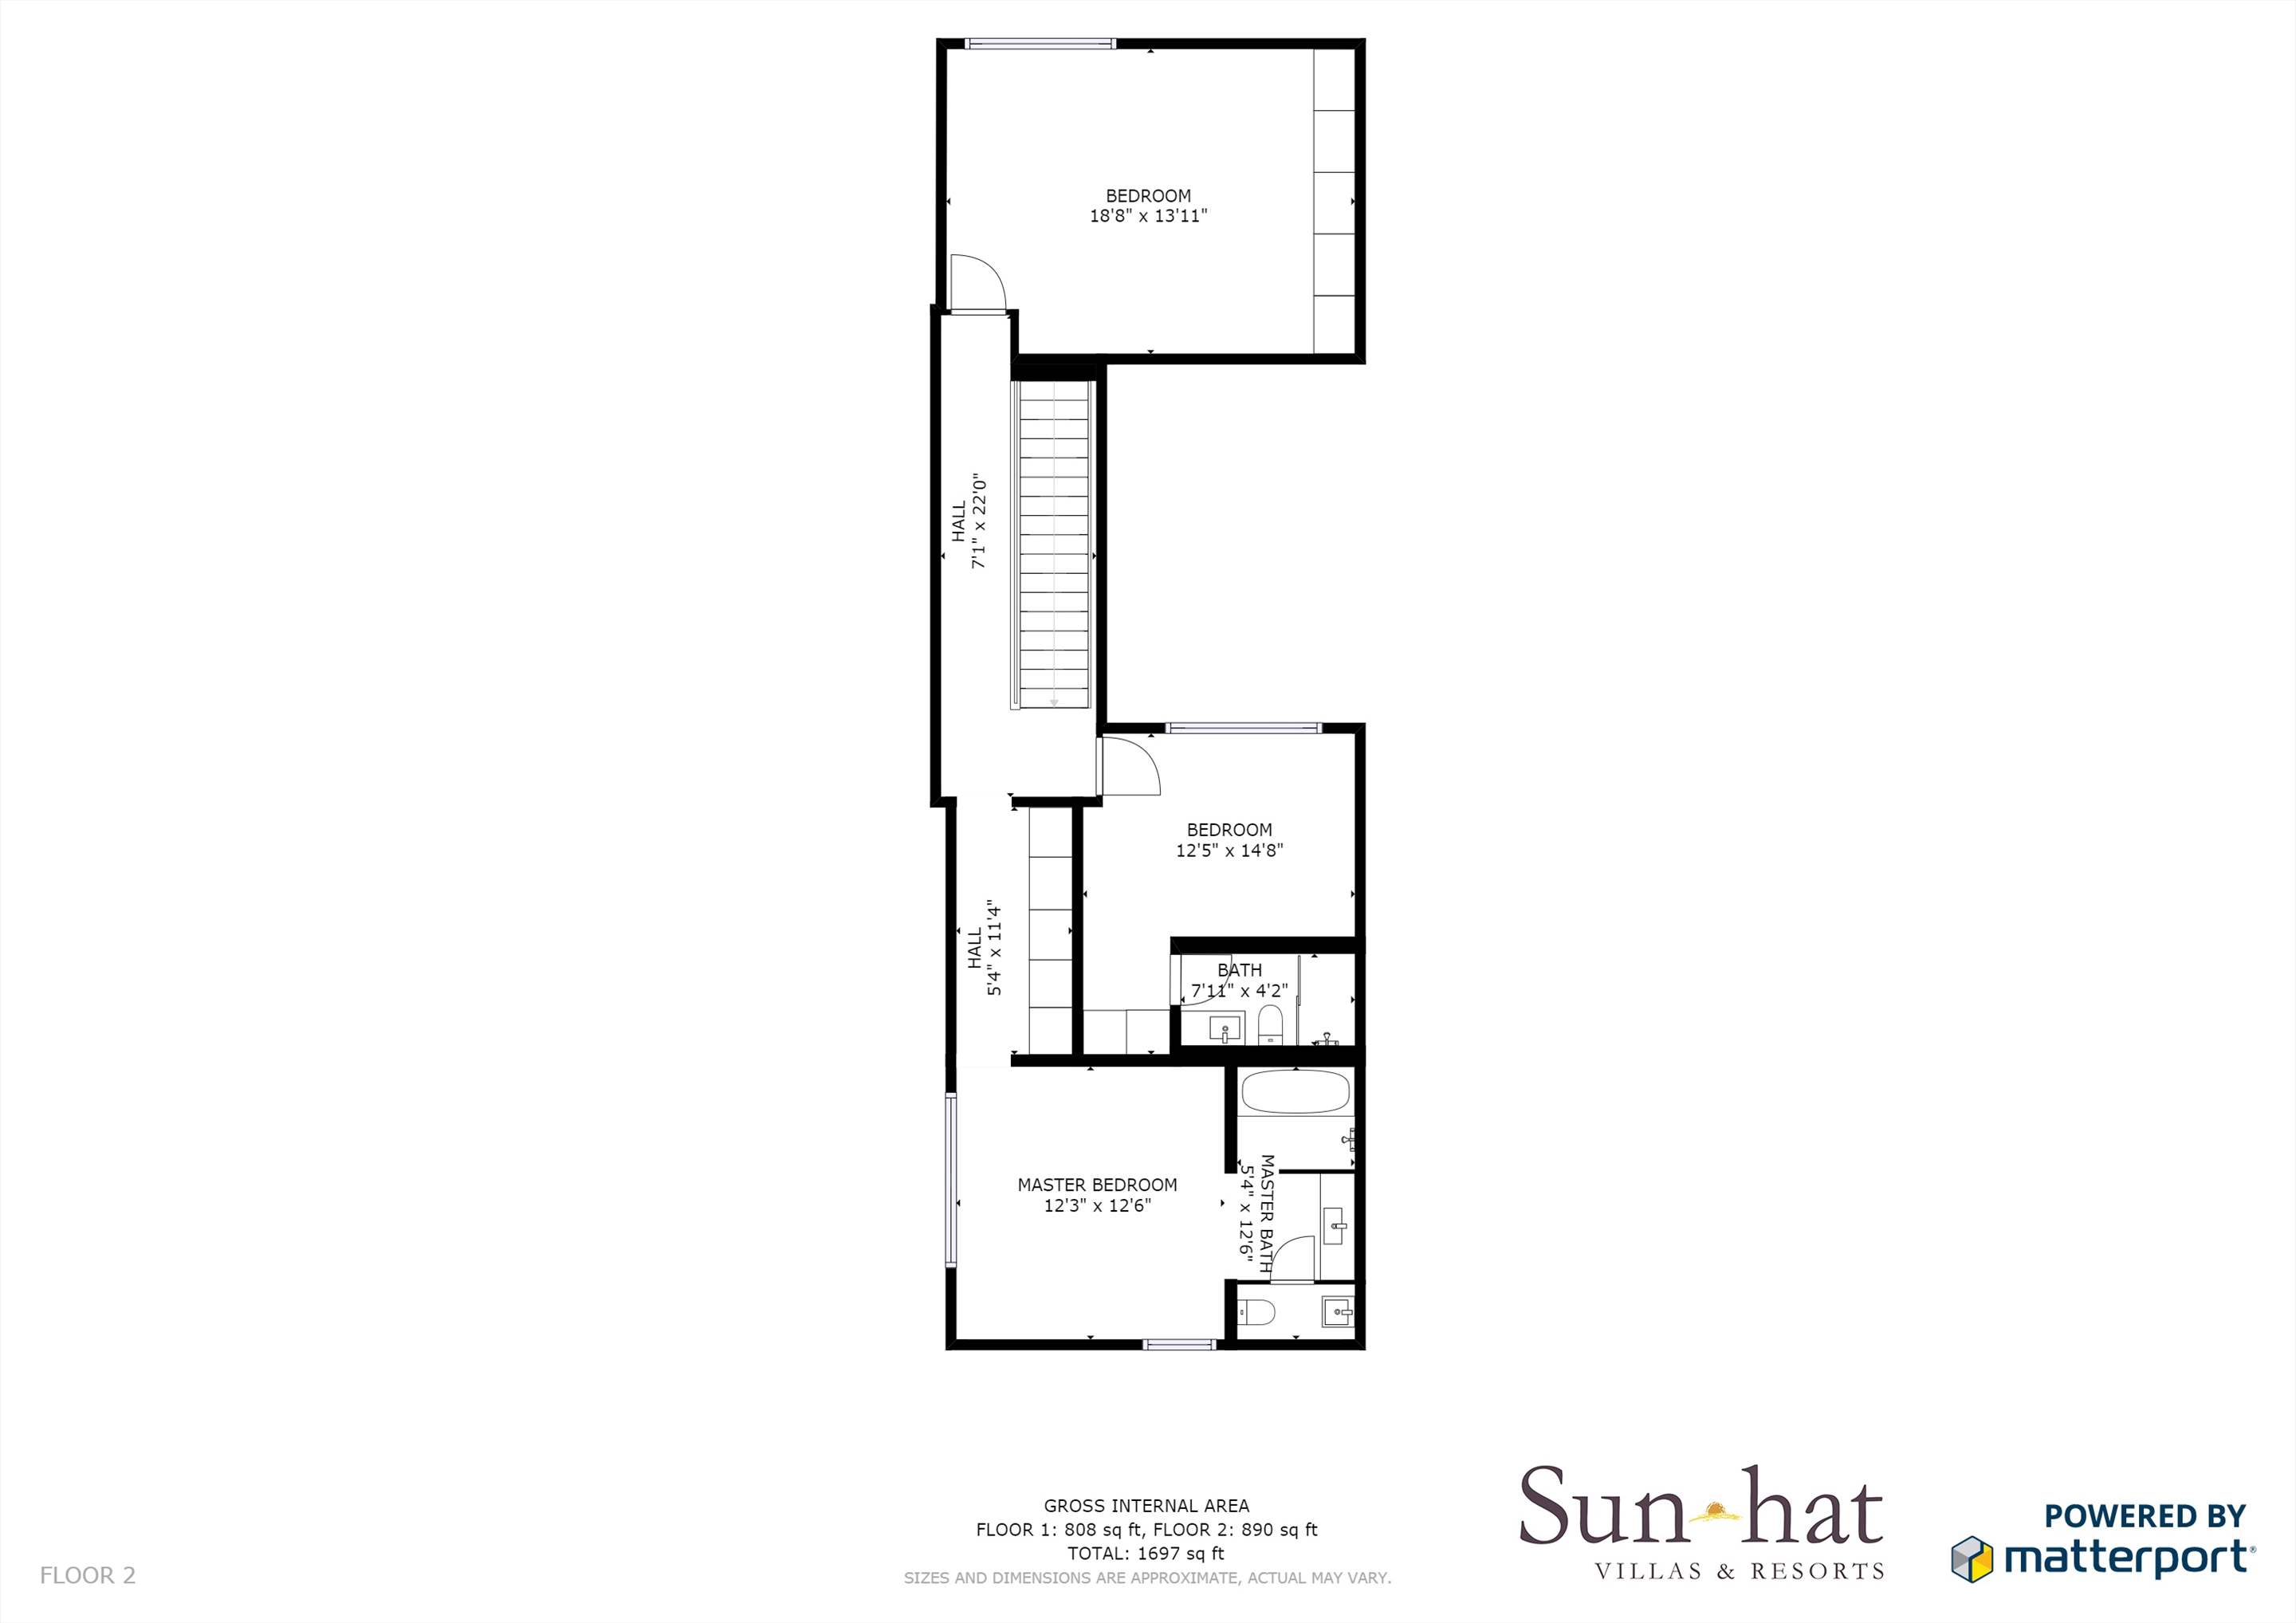 Pine Cliffs Terraces, 4 Bedroom, room only basis Floorplan #2